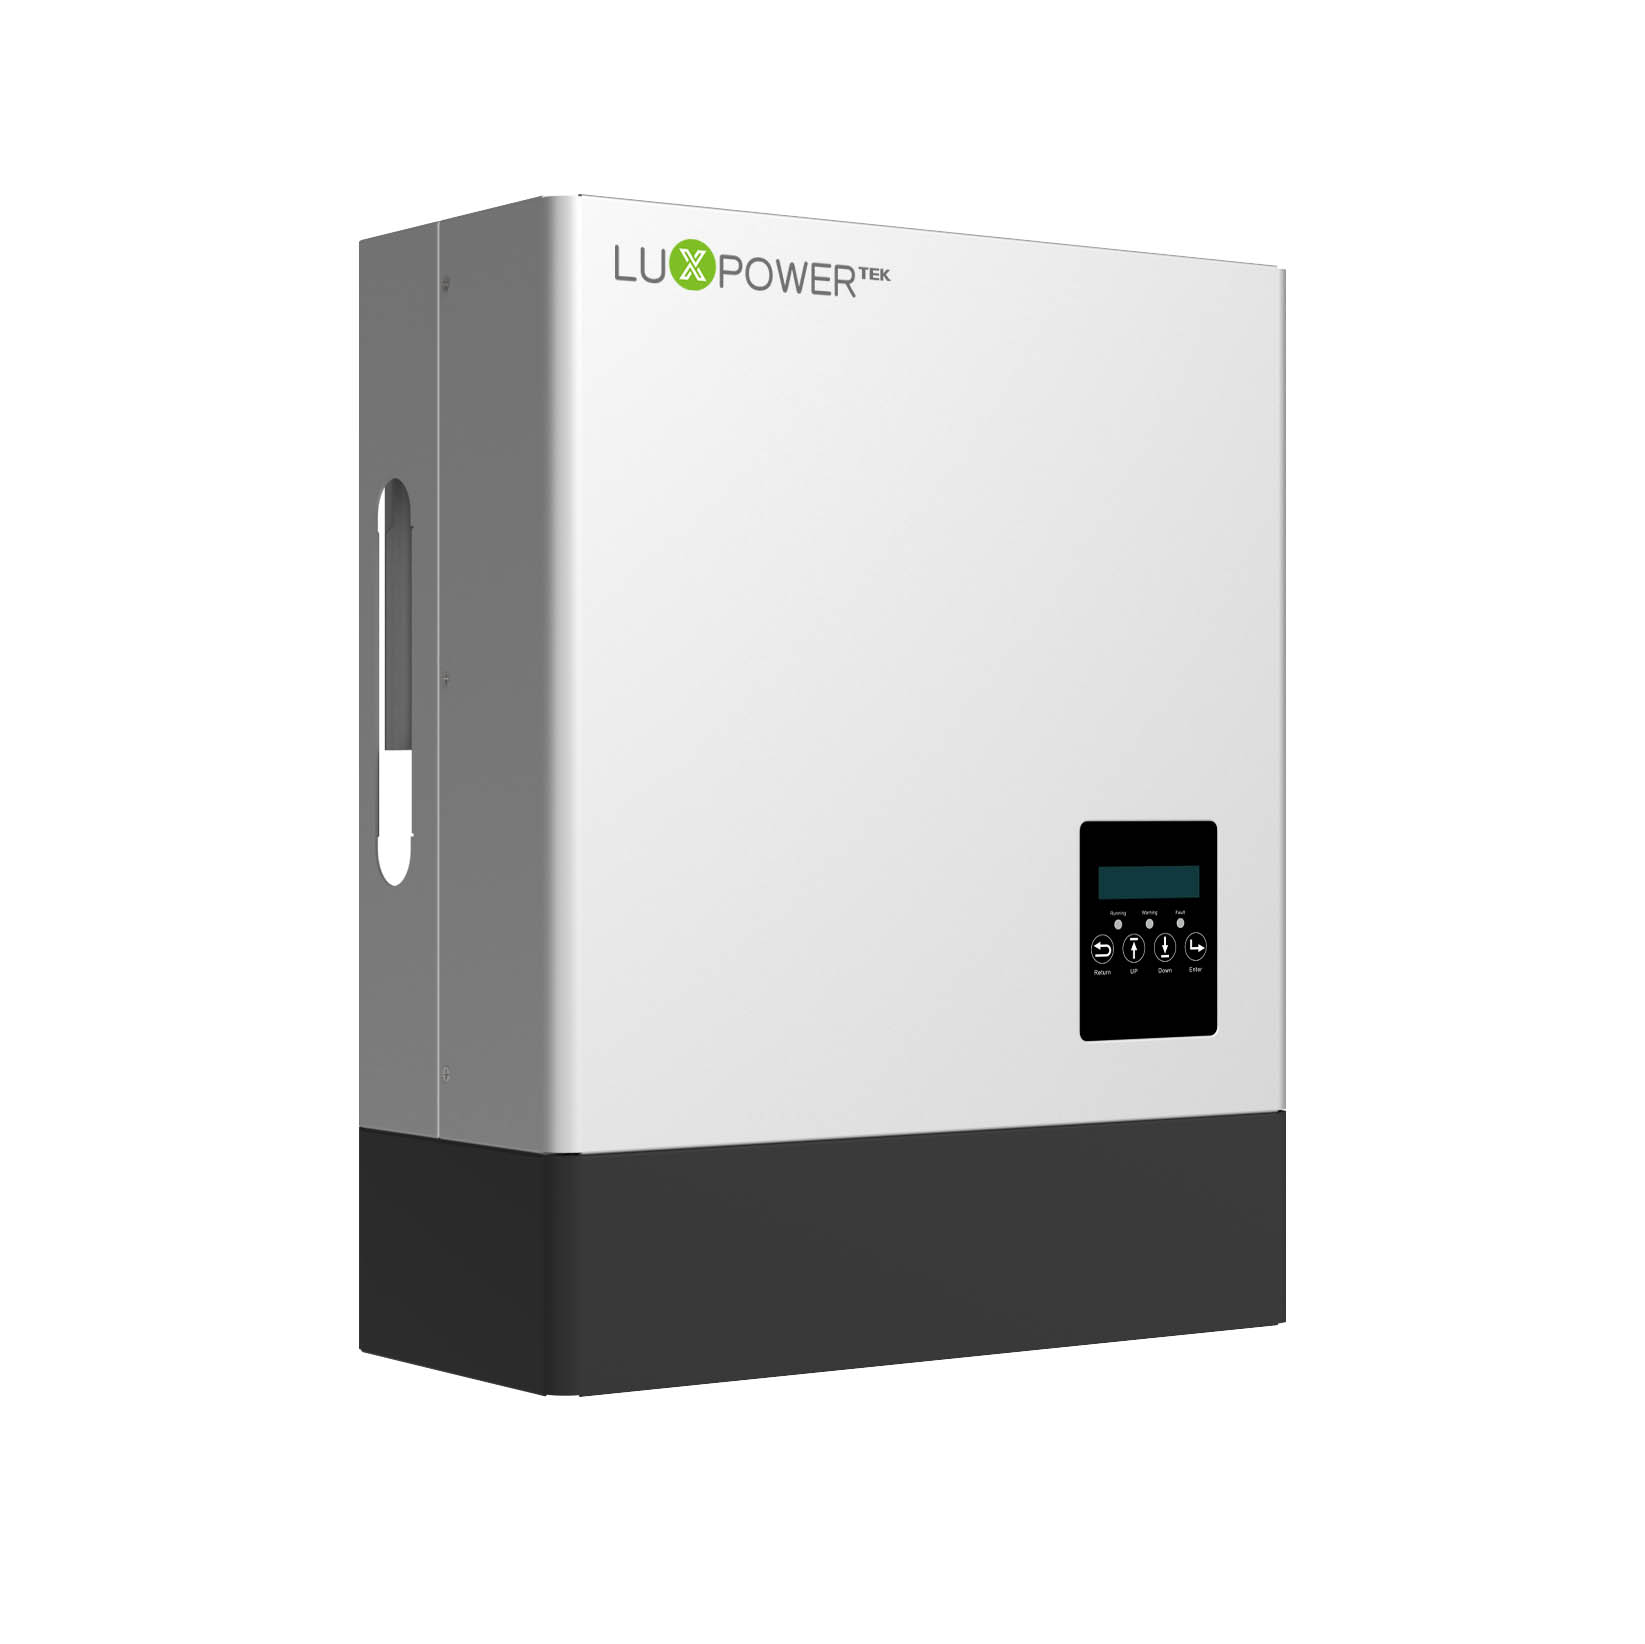 Best Price on Cec Approved Hybrid Inverter -